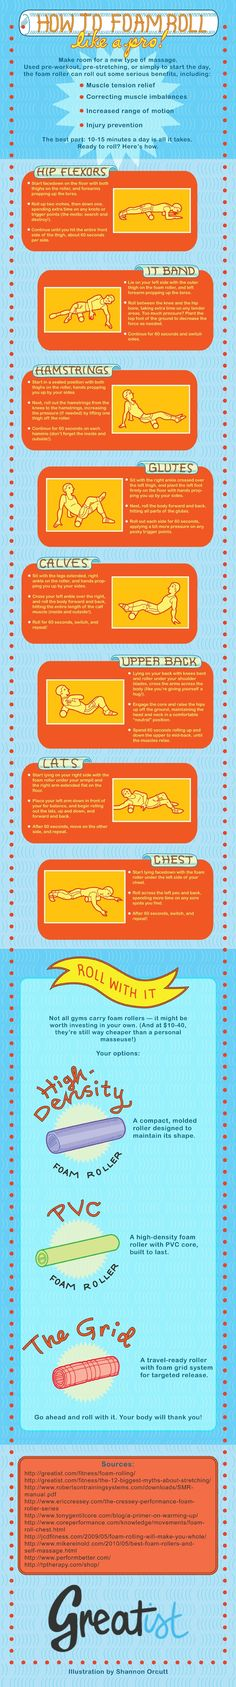 How to Foam Roll Like a Pro [infographic] via @tribesports